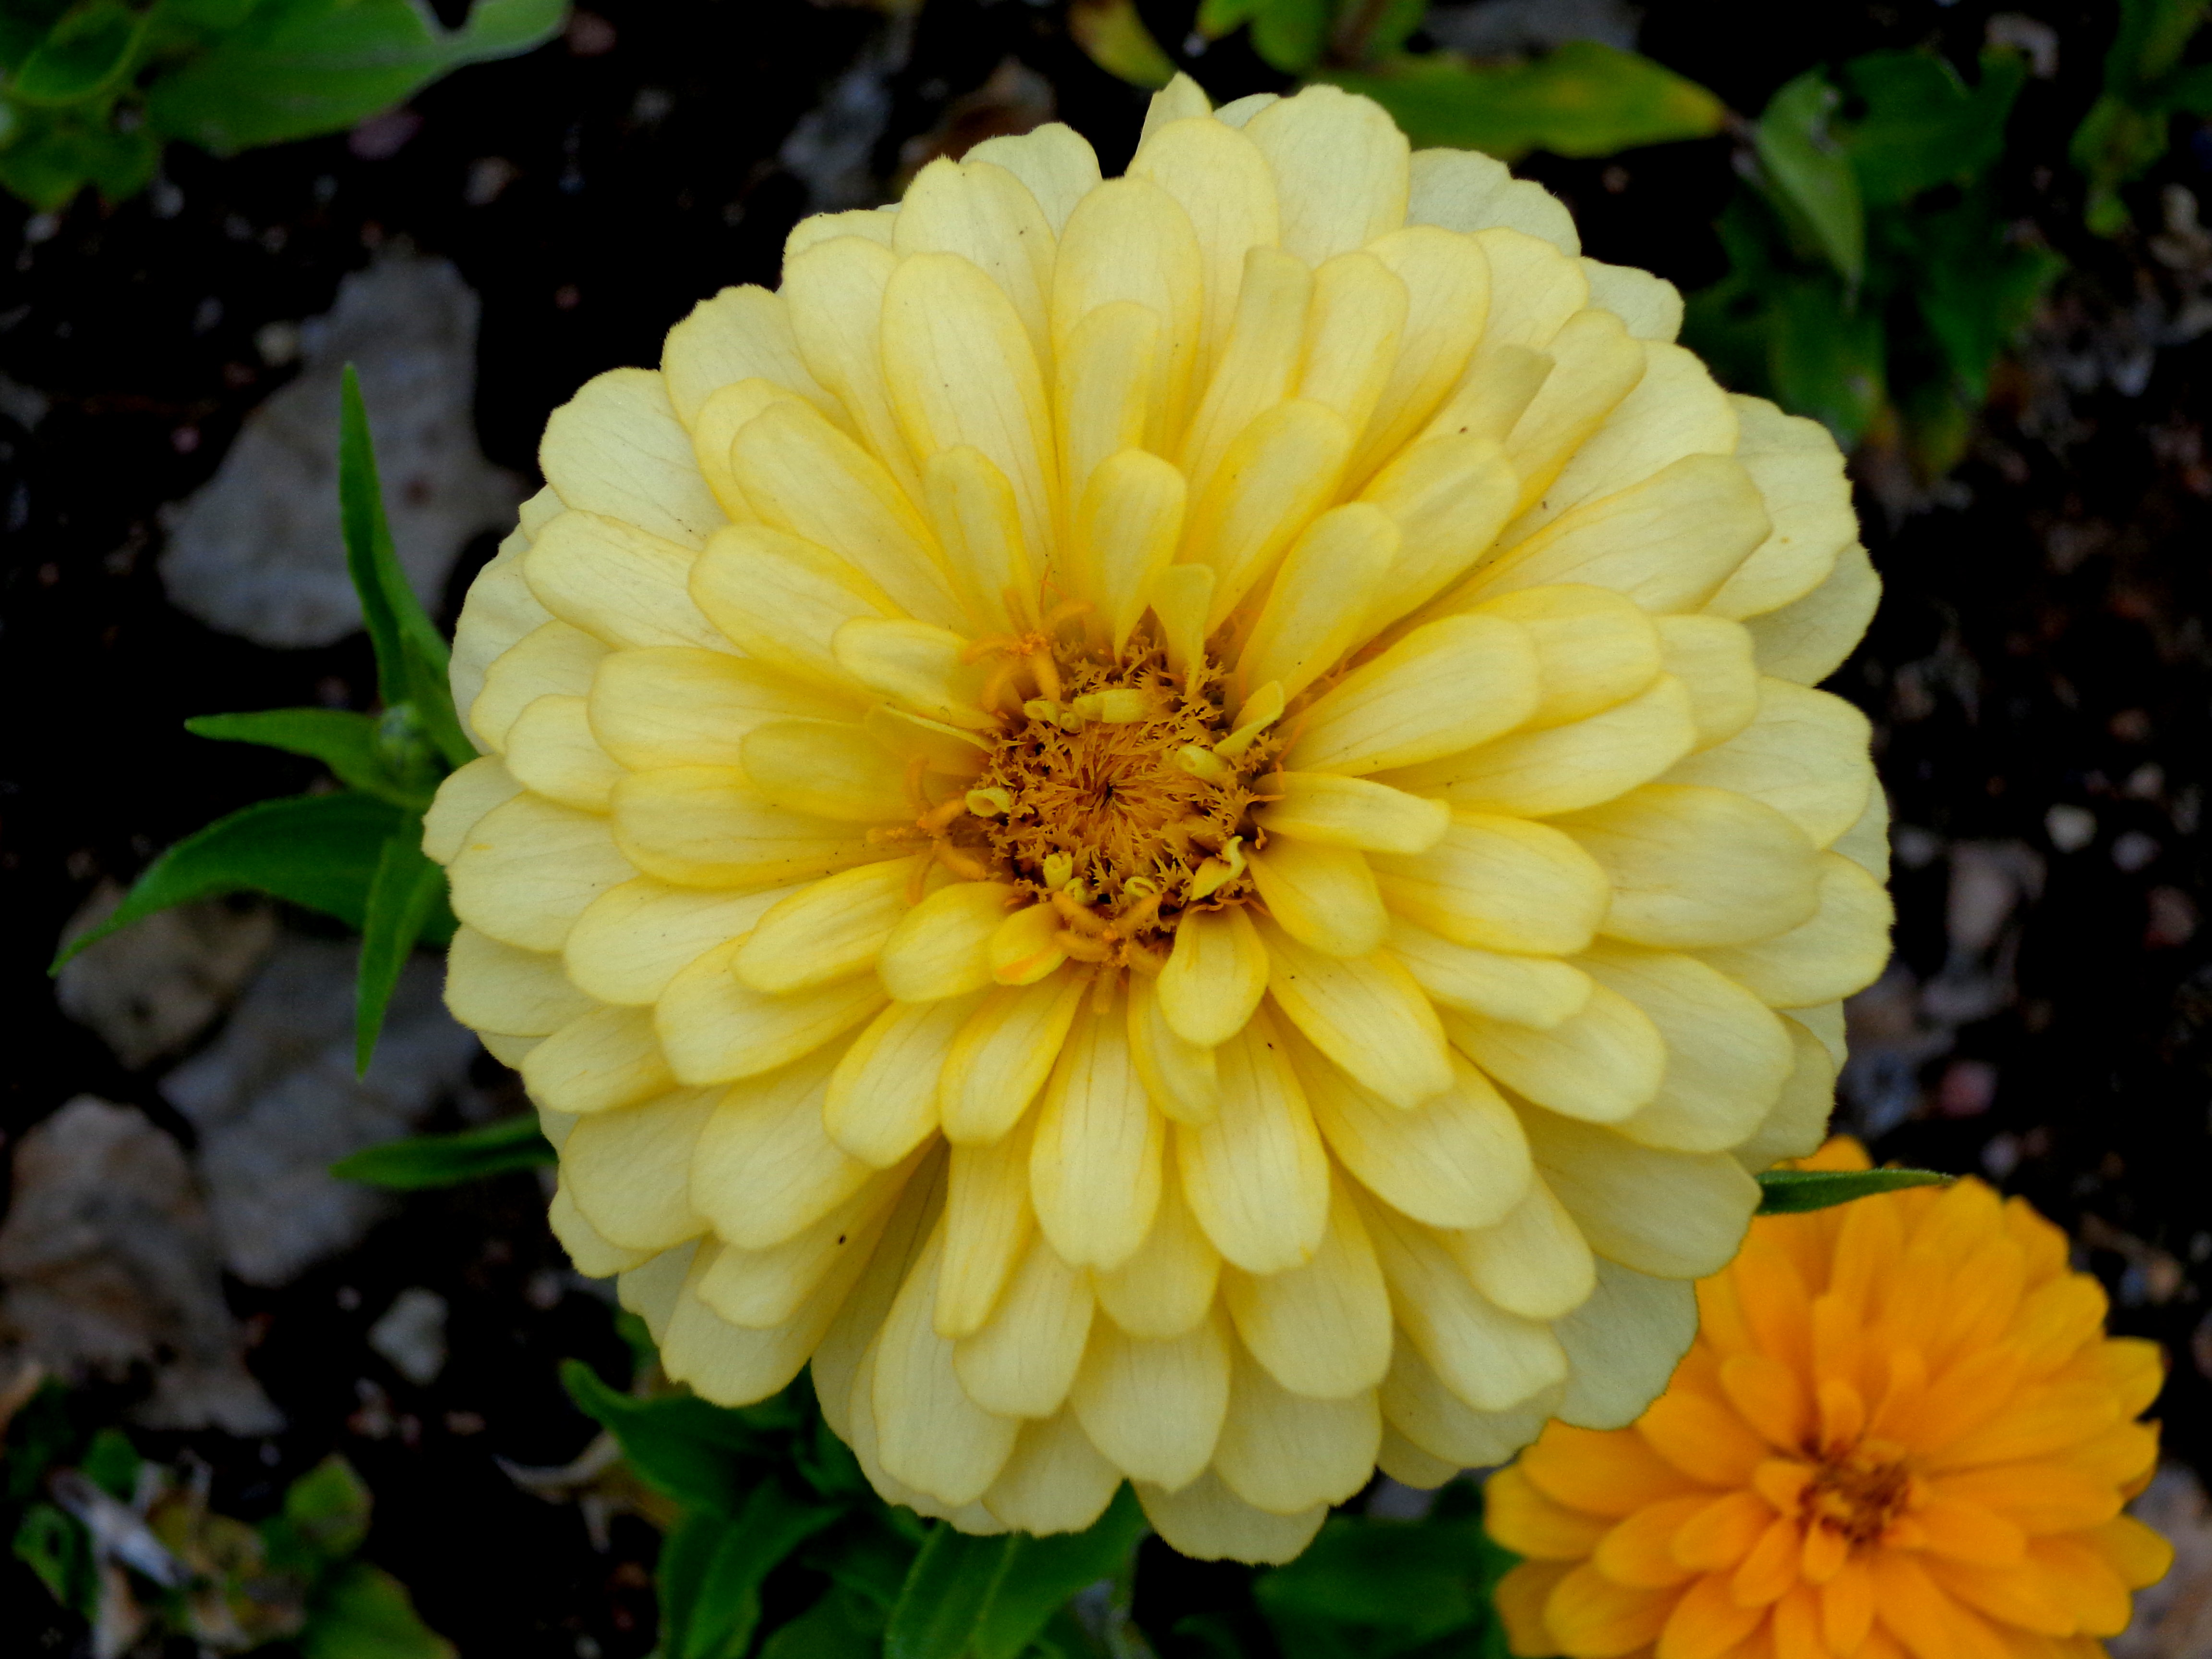 Yellow zinnia flower picture free photograph photos public domain yellow zinnia flower mightylinksfo Choice Image